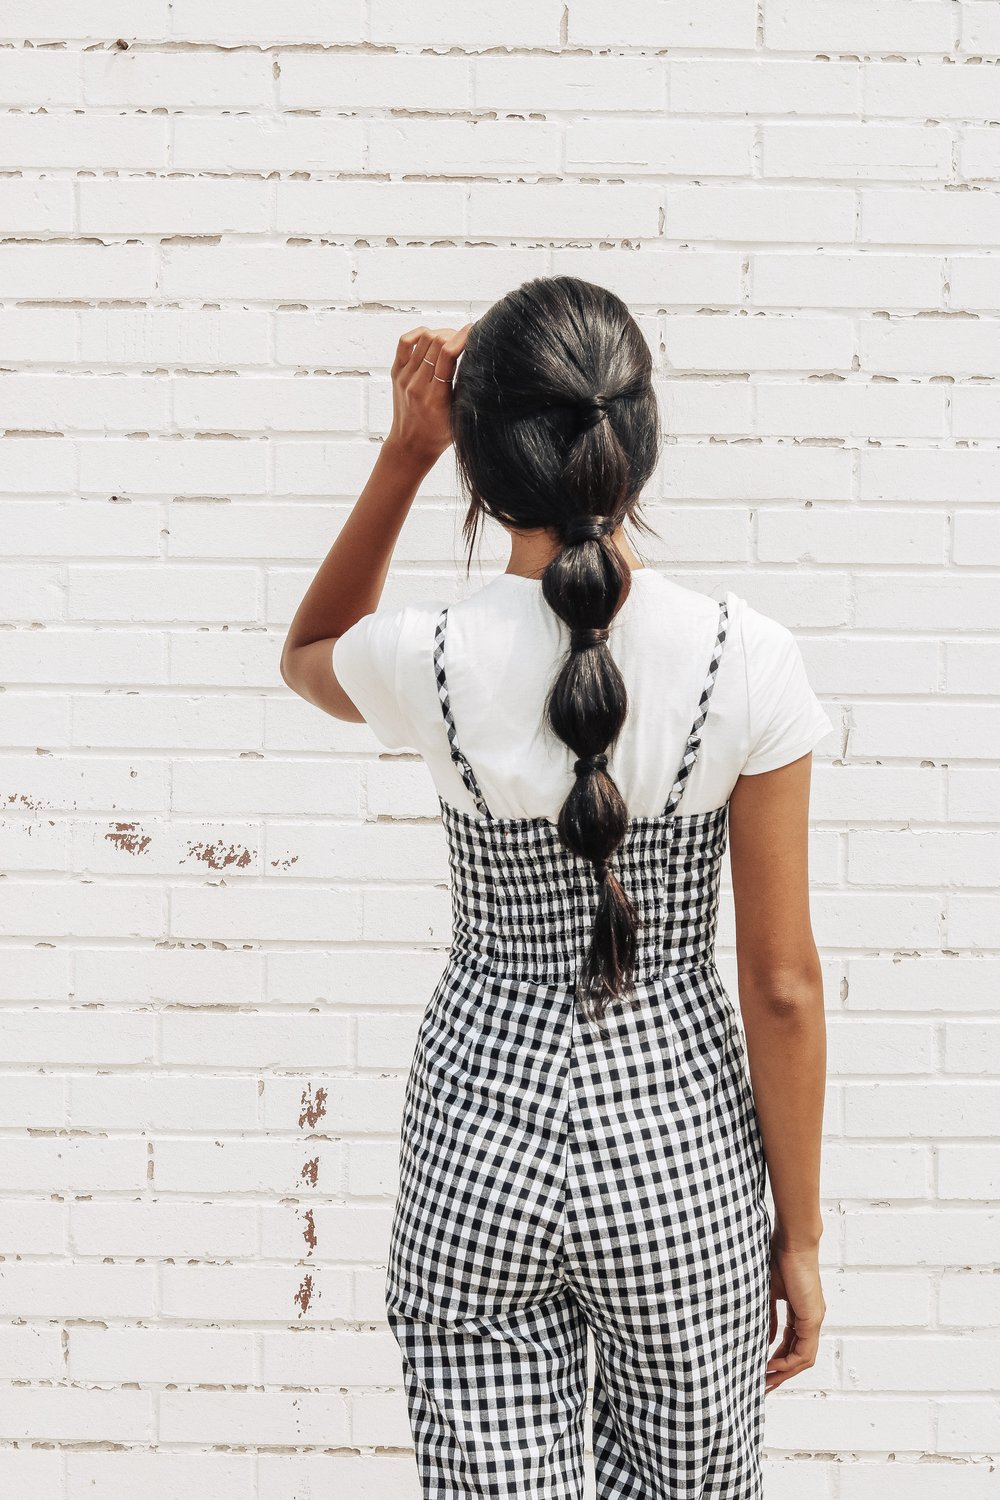 Bubble Pony - This is such a simple way to dress up a ponytail- all you need is 5 little elastics!! It also looks super cute in a high-pony too!